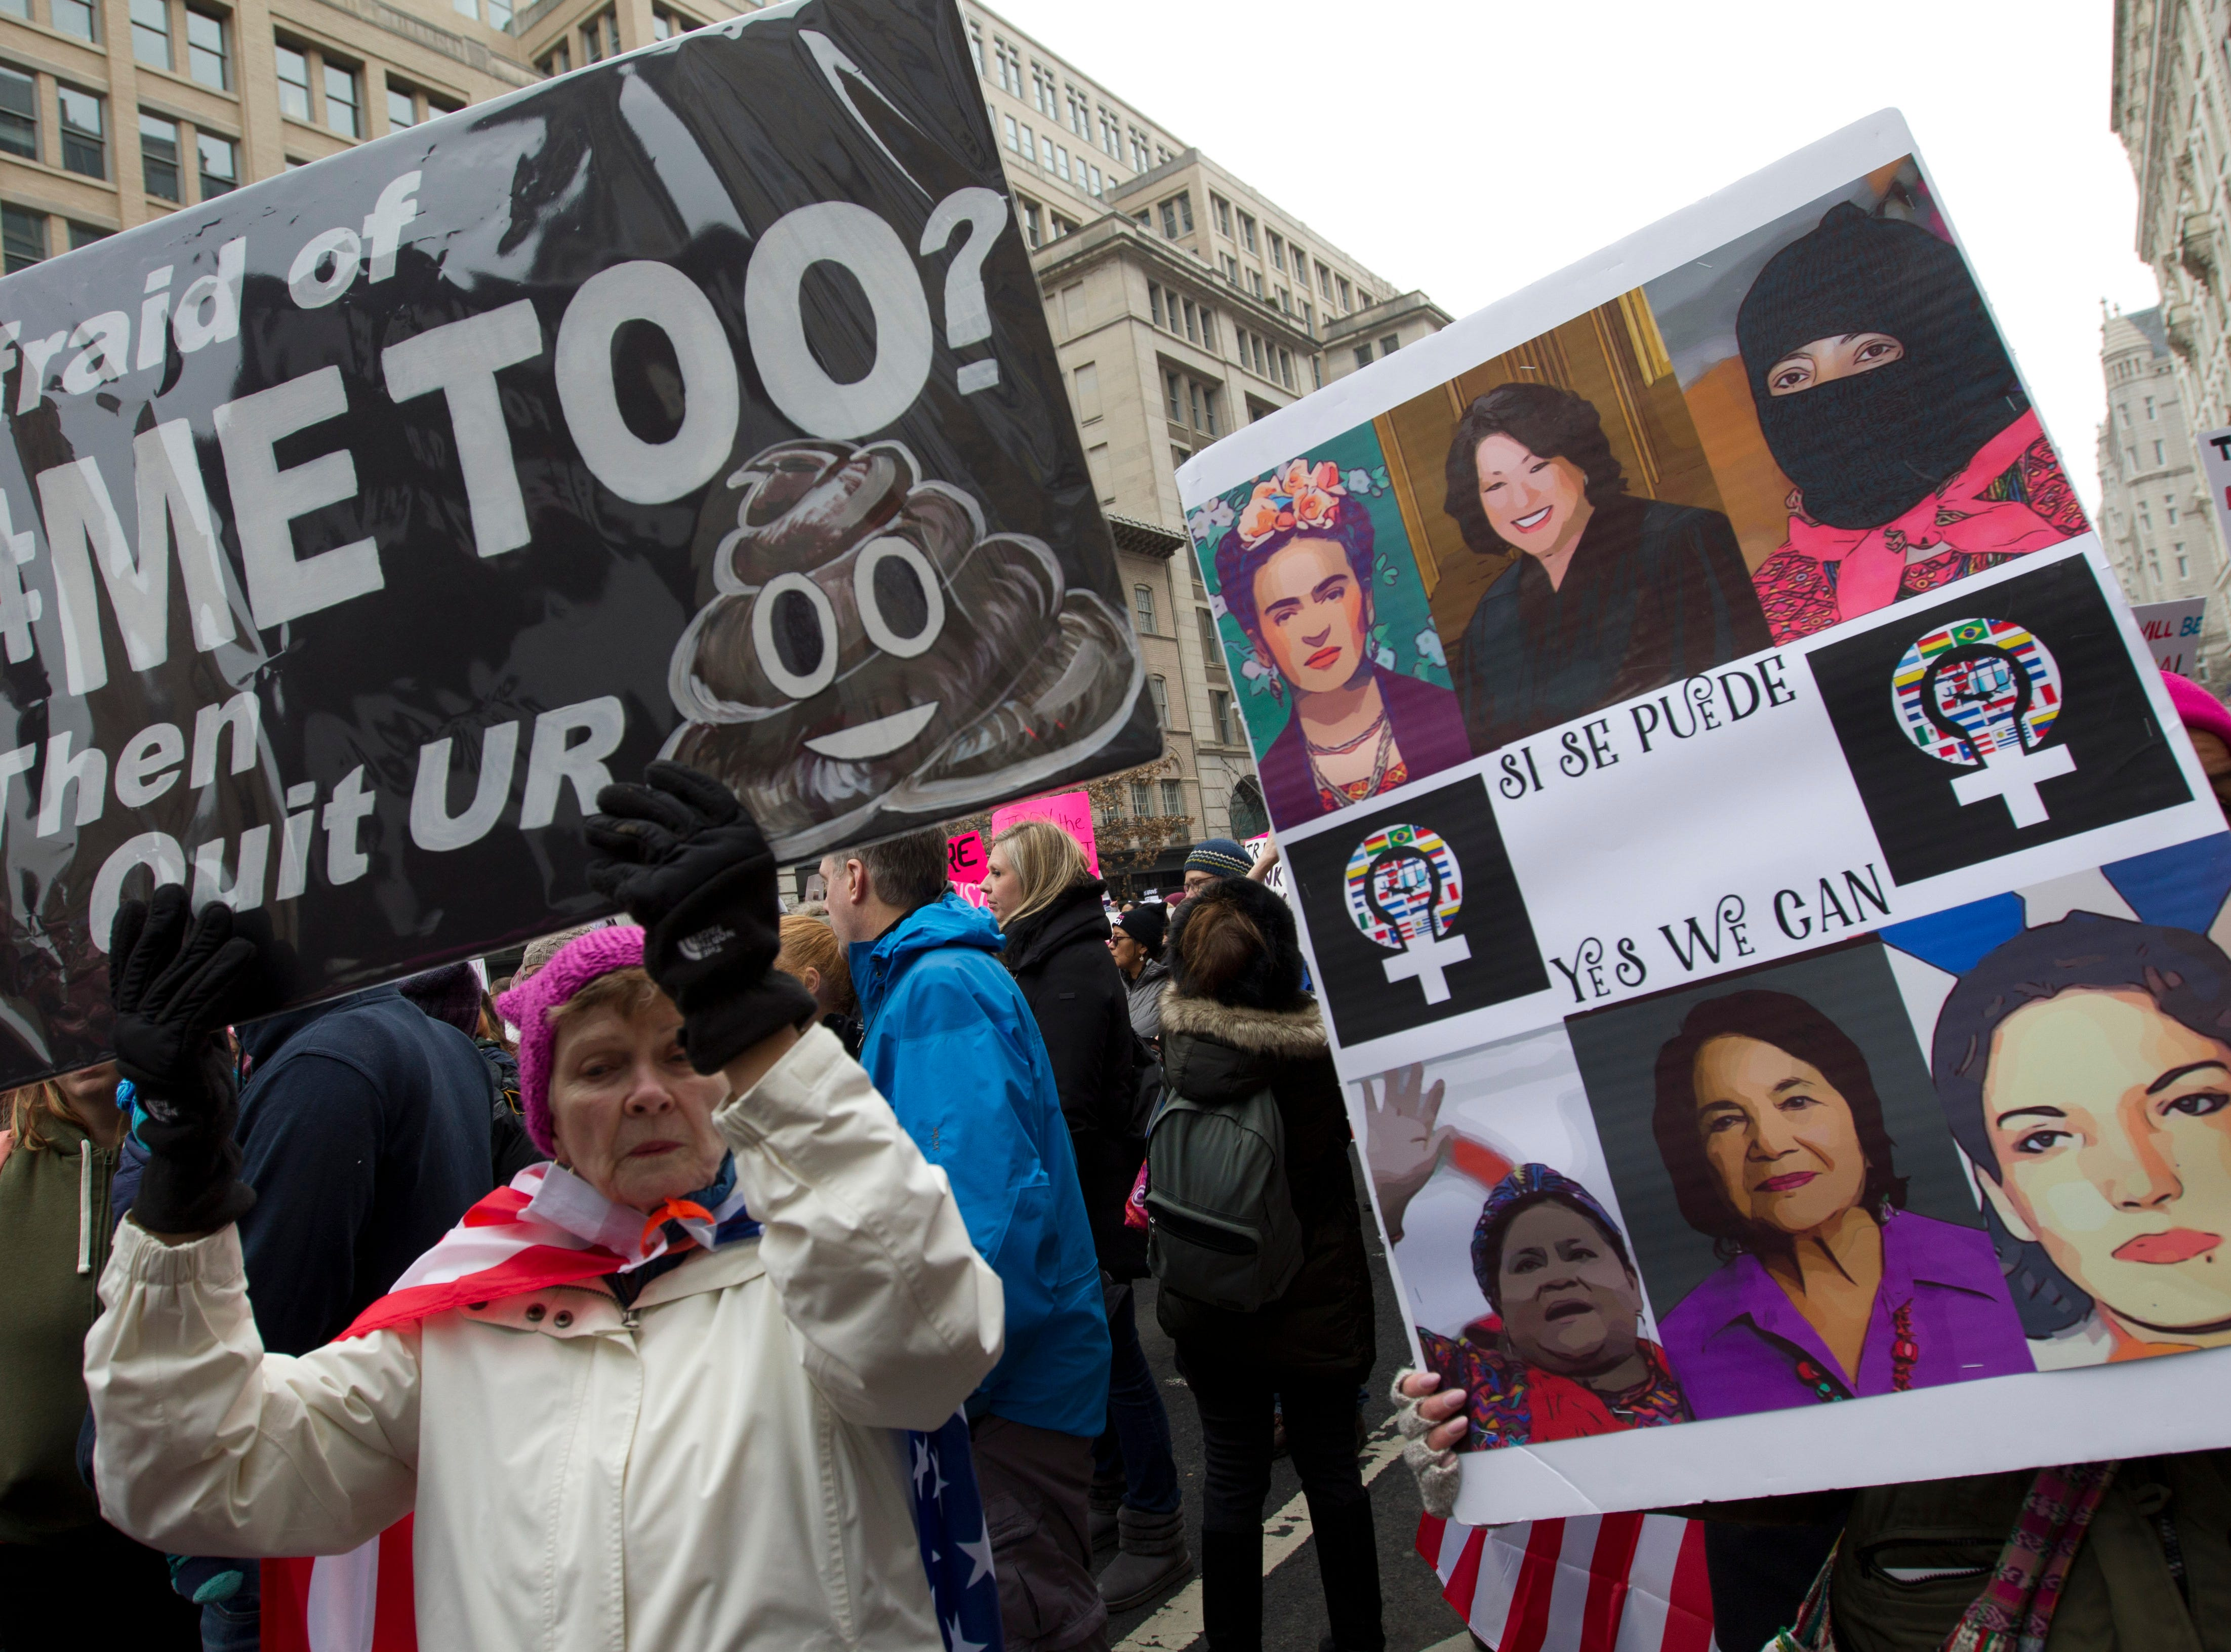 Demonstrators hold signs during the Women's March in Washington on Saturday, Jan. 19, 2019.